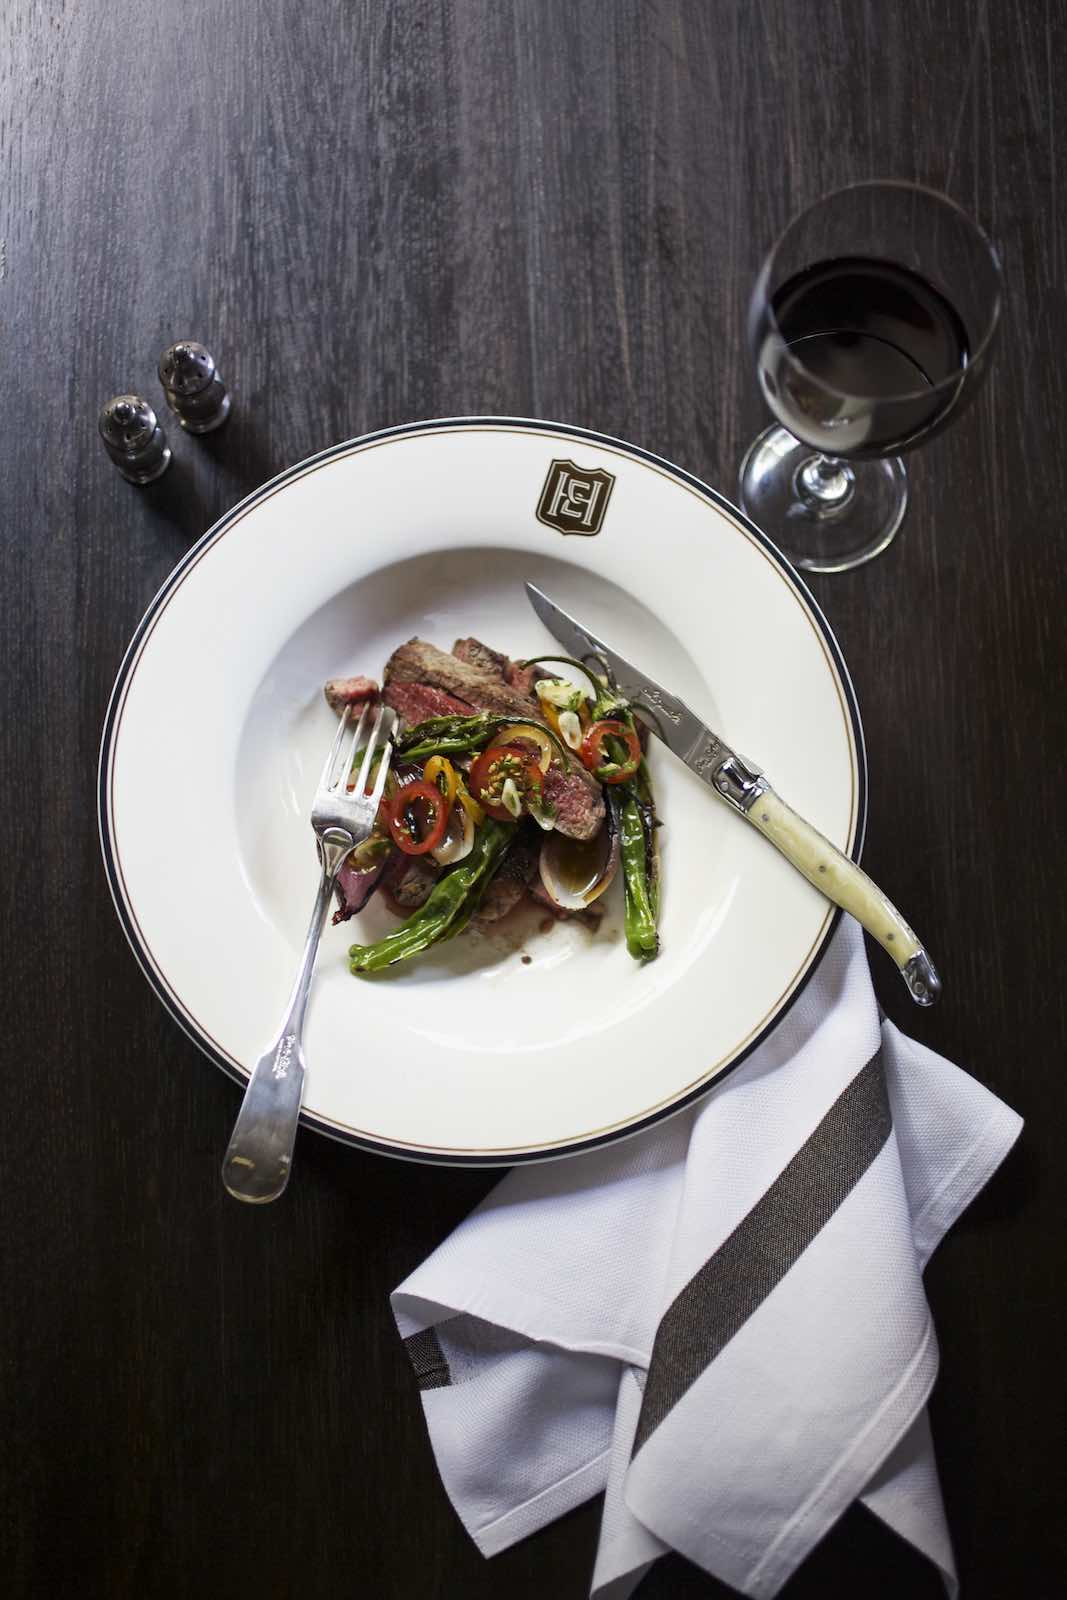 Jody Horton Photography - Steak dish in a monogrammed plate and red wine on a dark, wood table.